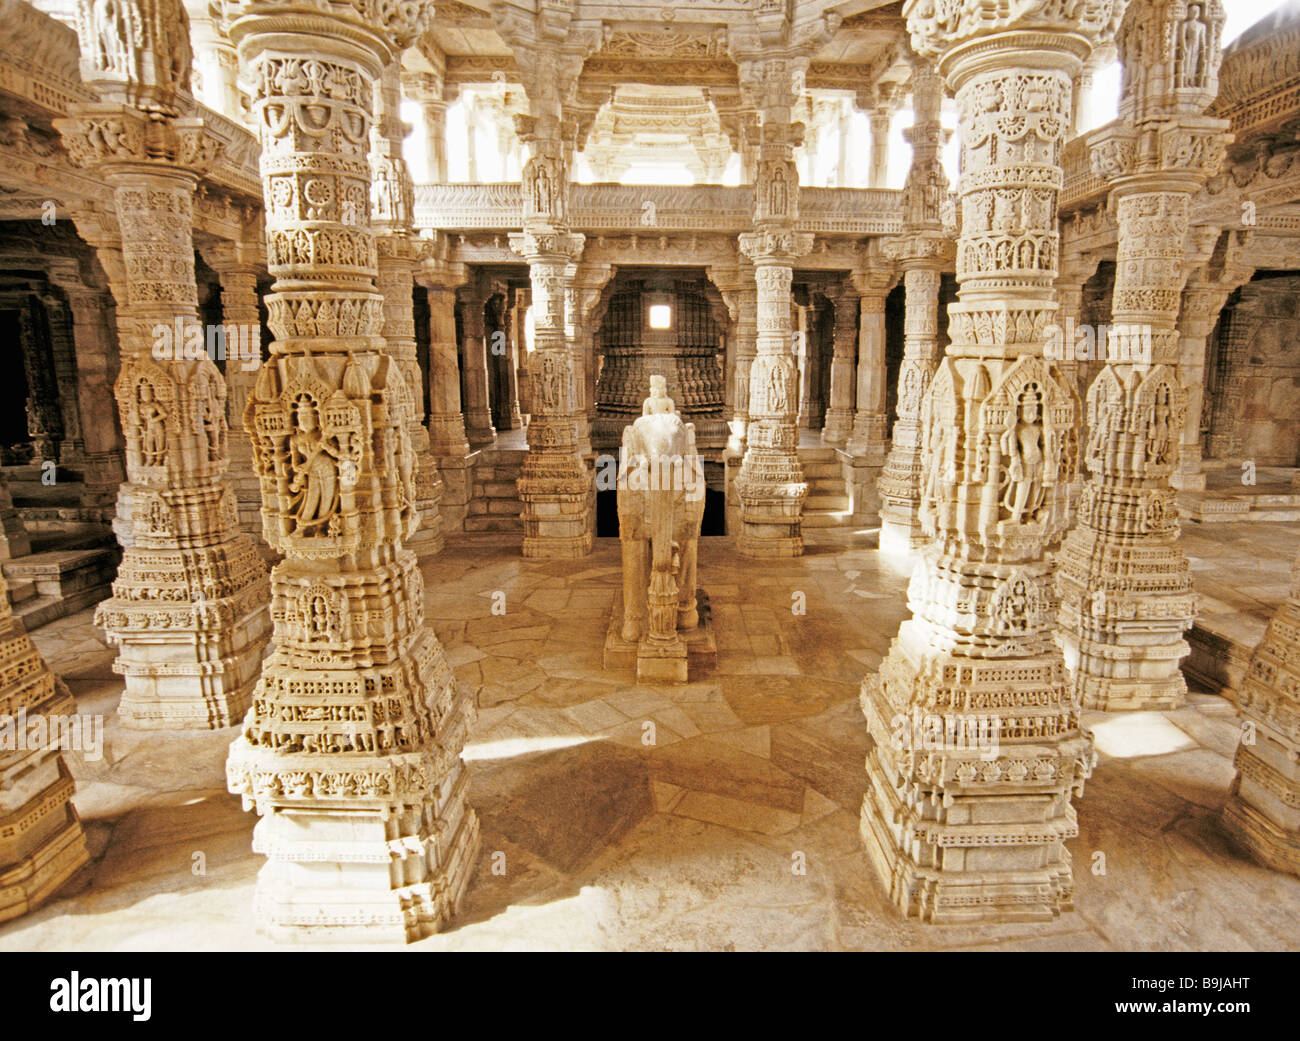 Rajasthan S Ornately Carved Pillars Of White Marble In The